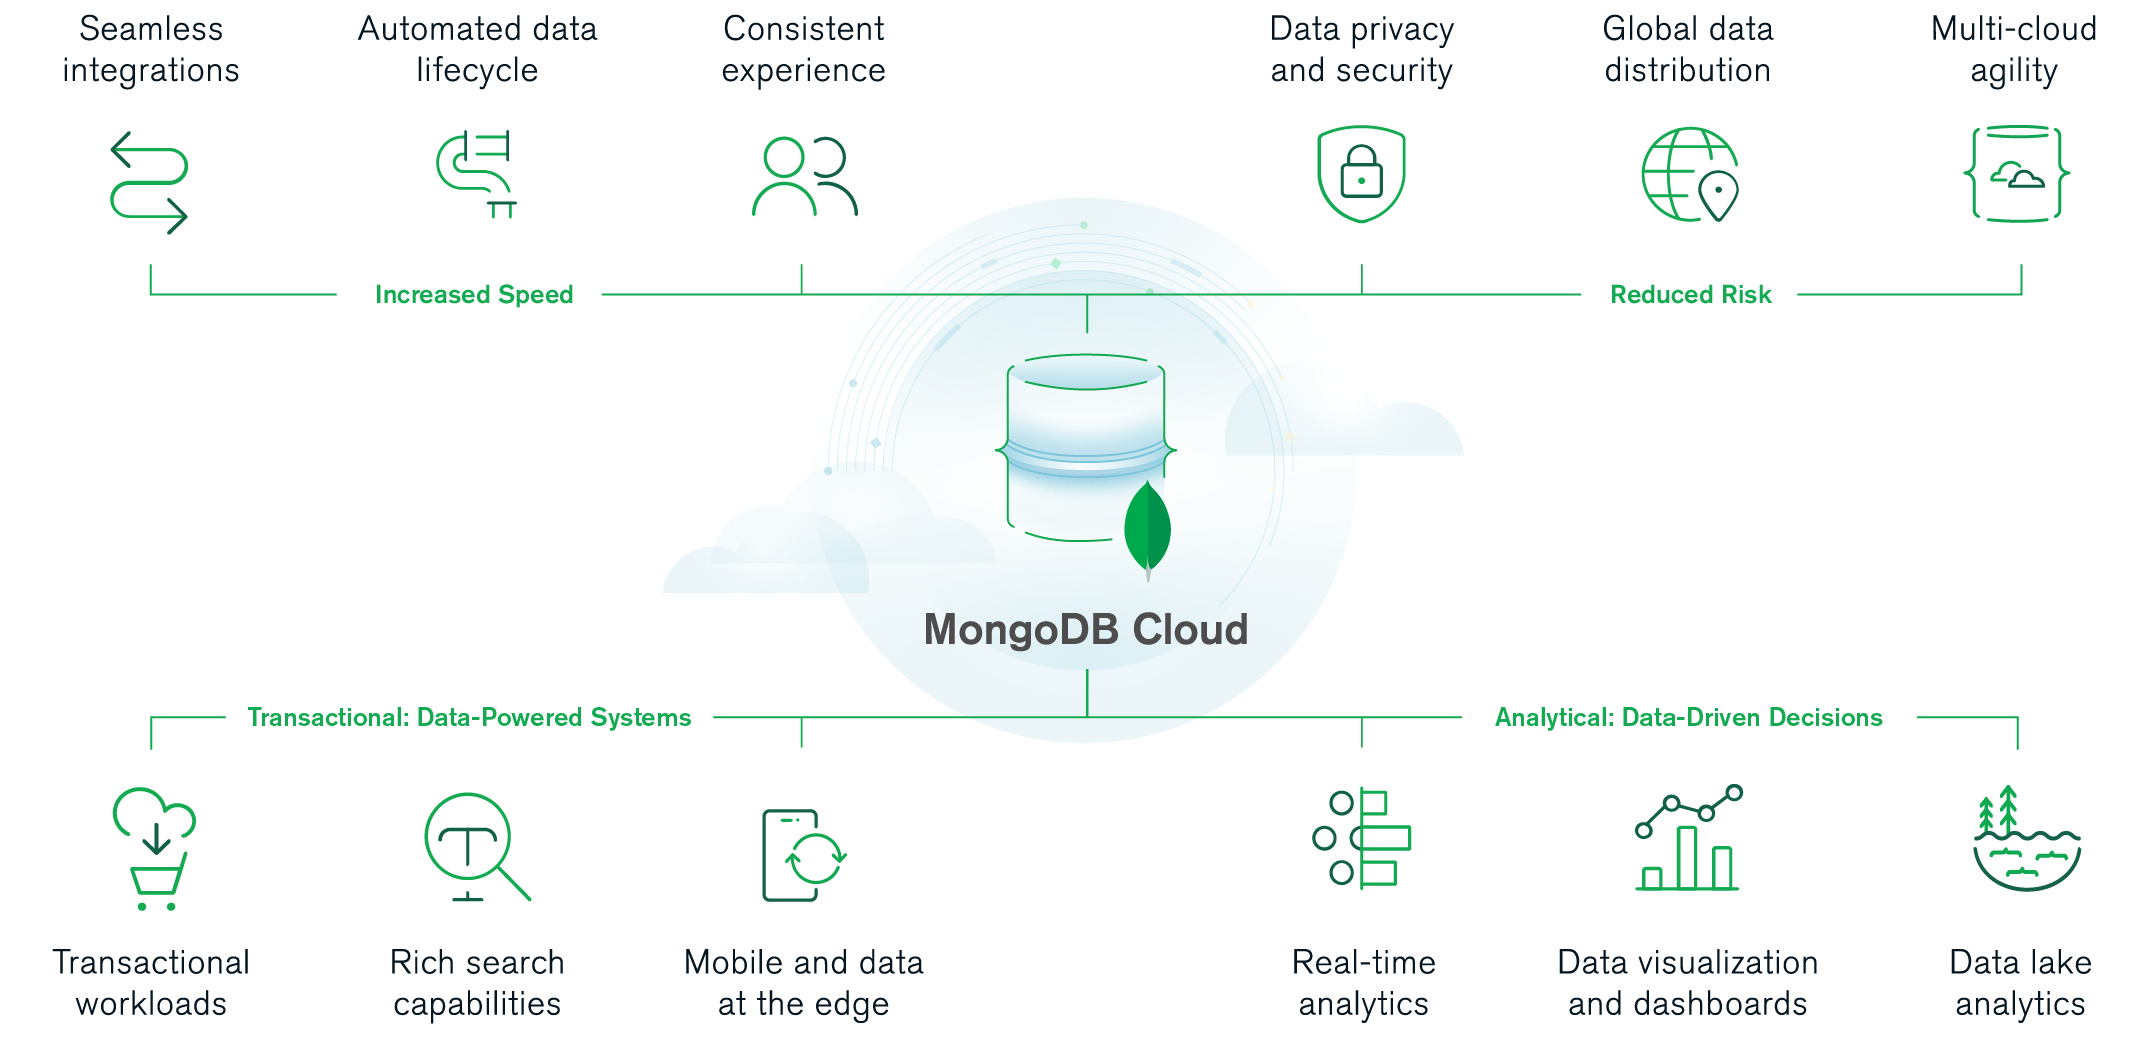 A diagram of MongoDB Cloud offerings which include: Seamless integrations, automated data lifecycles, a consistent experience, data security and privacy, global data distribution, multi-cloud agility, transactional workloads, rich search capabilities, mobile and edge data, real-time analytics, data visualizations, and data lake analytics